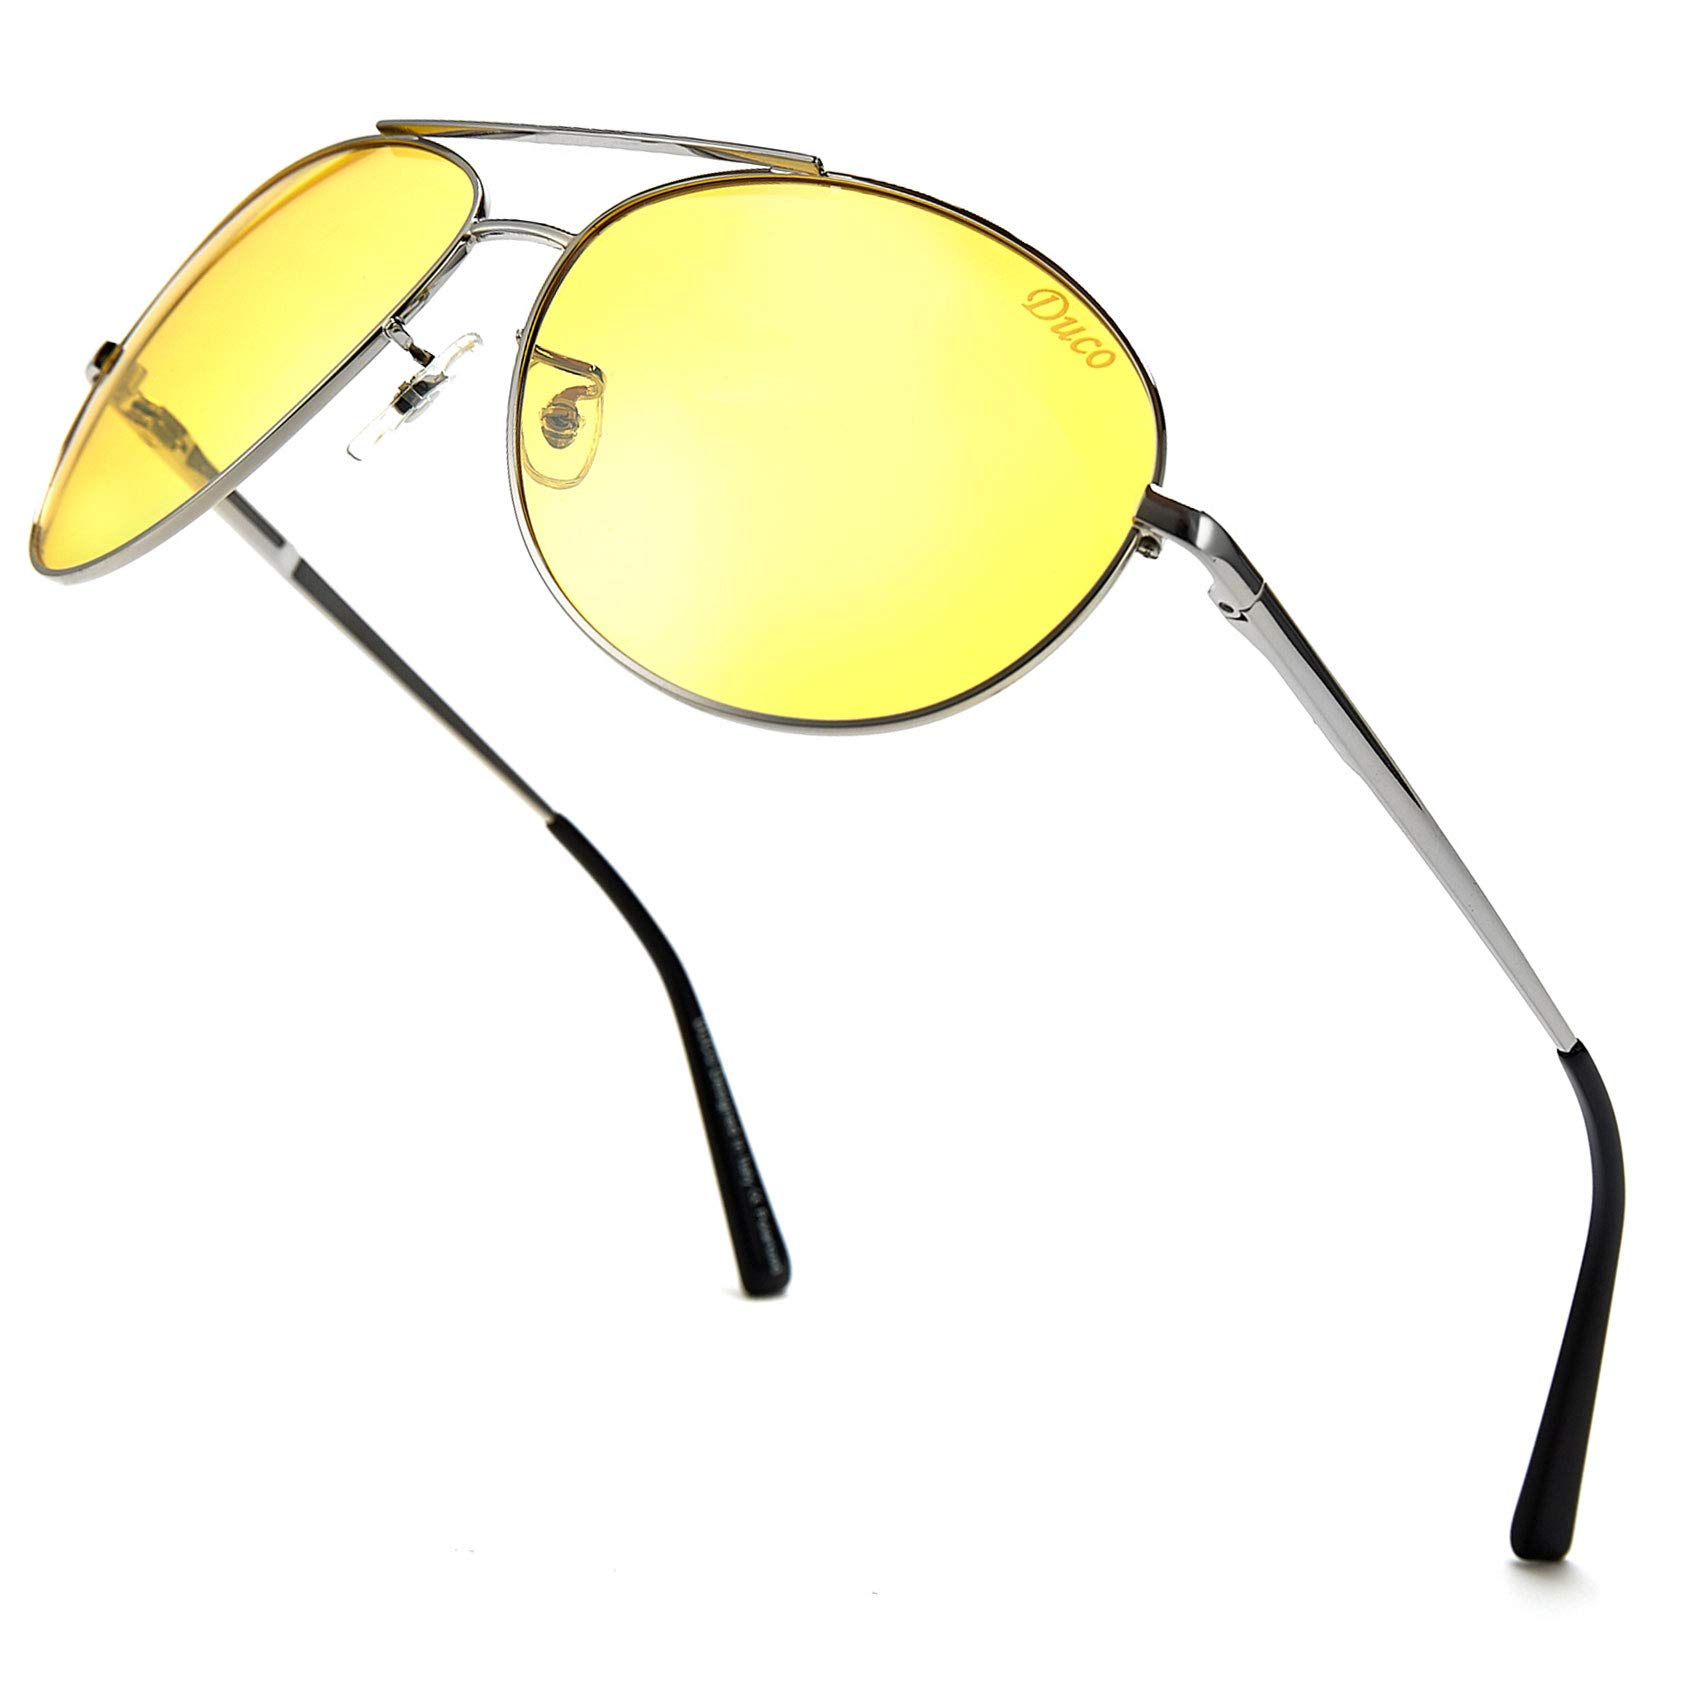 DUCO Men's Night-Vision Glasses Driving Glasses Polarized Anti-Glare 3025y (Shine Sliver, Yellow) by DUCO